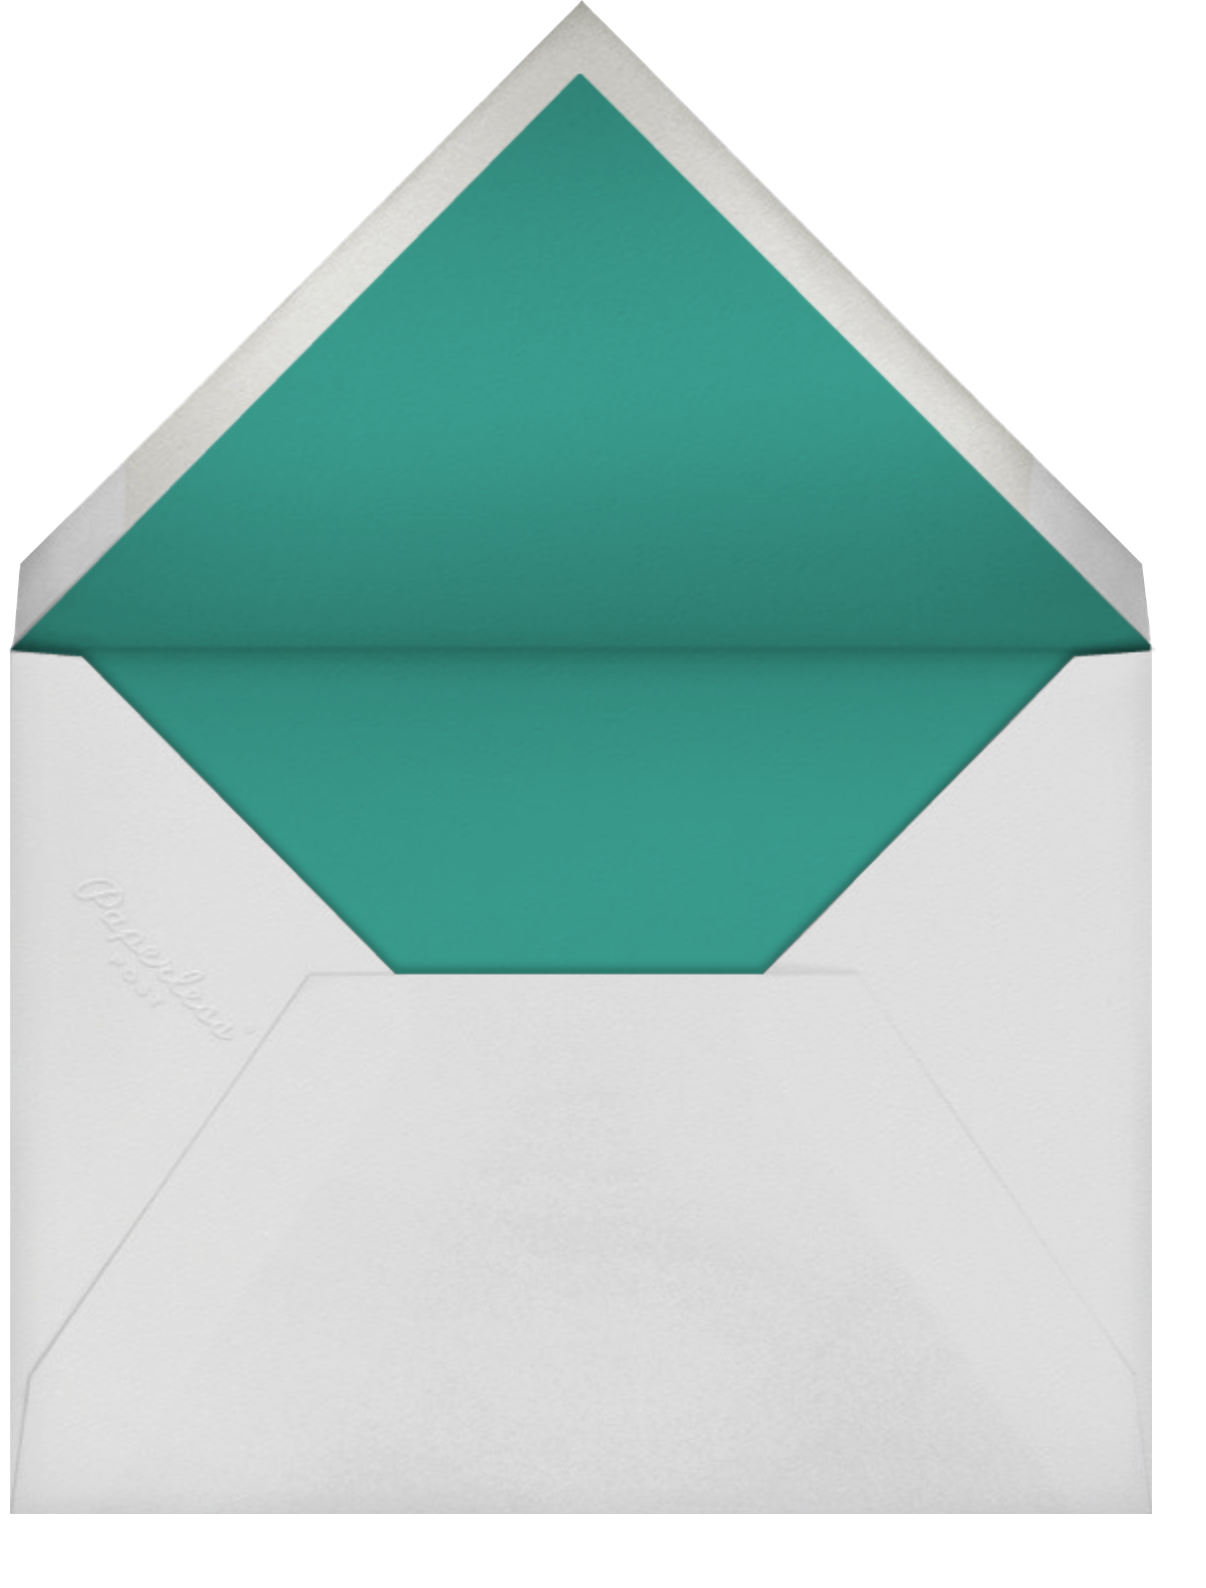 Fern I (Stationery) - Paperless Post - Personalized stationery - envelope back